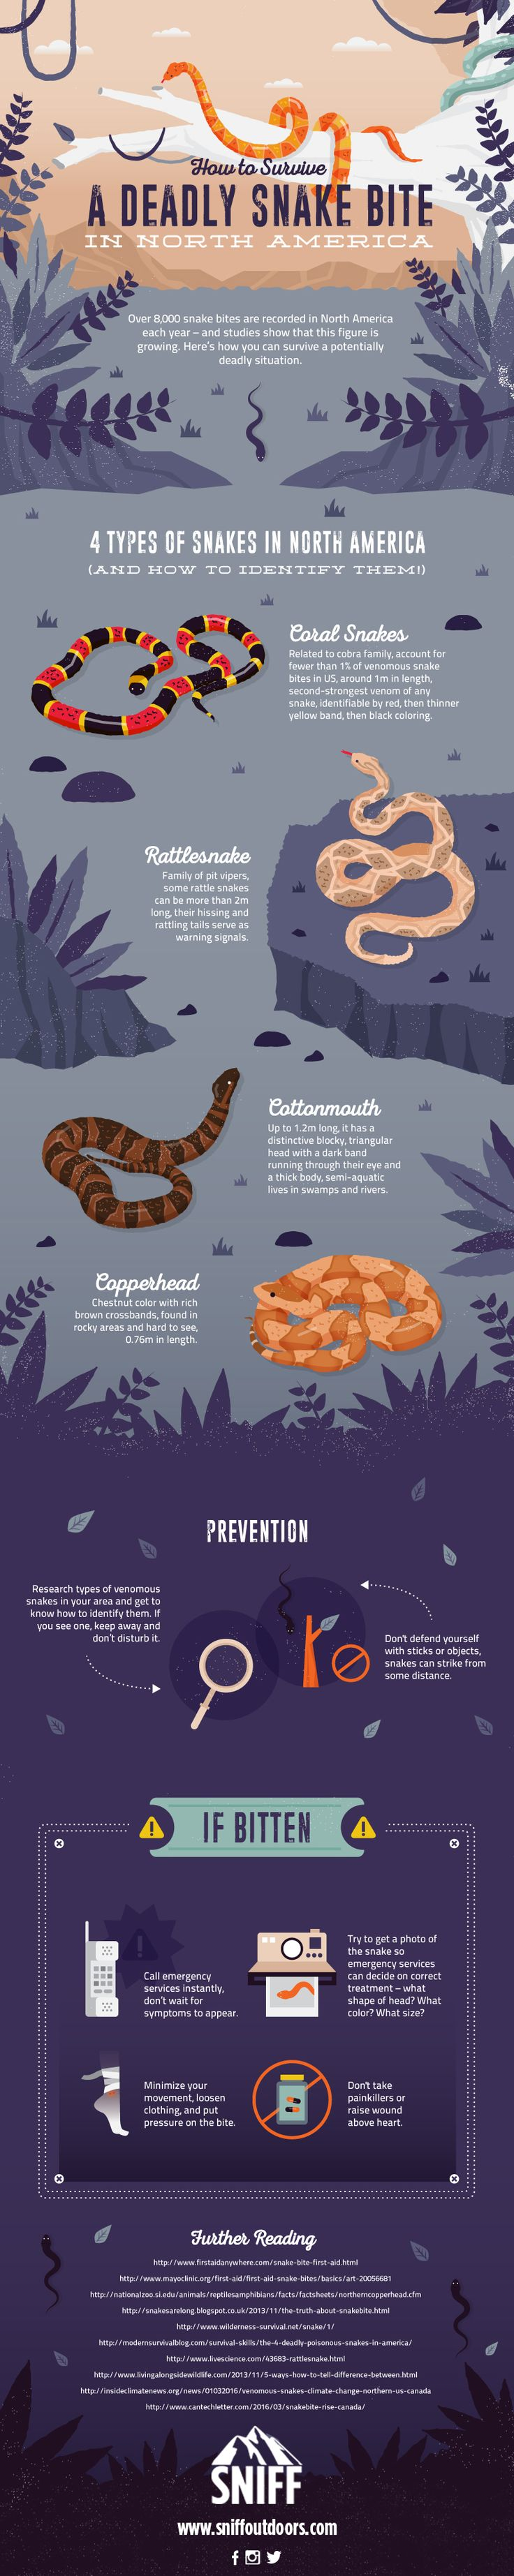 how to recognize deadly snakes and deal with snakebites